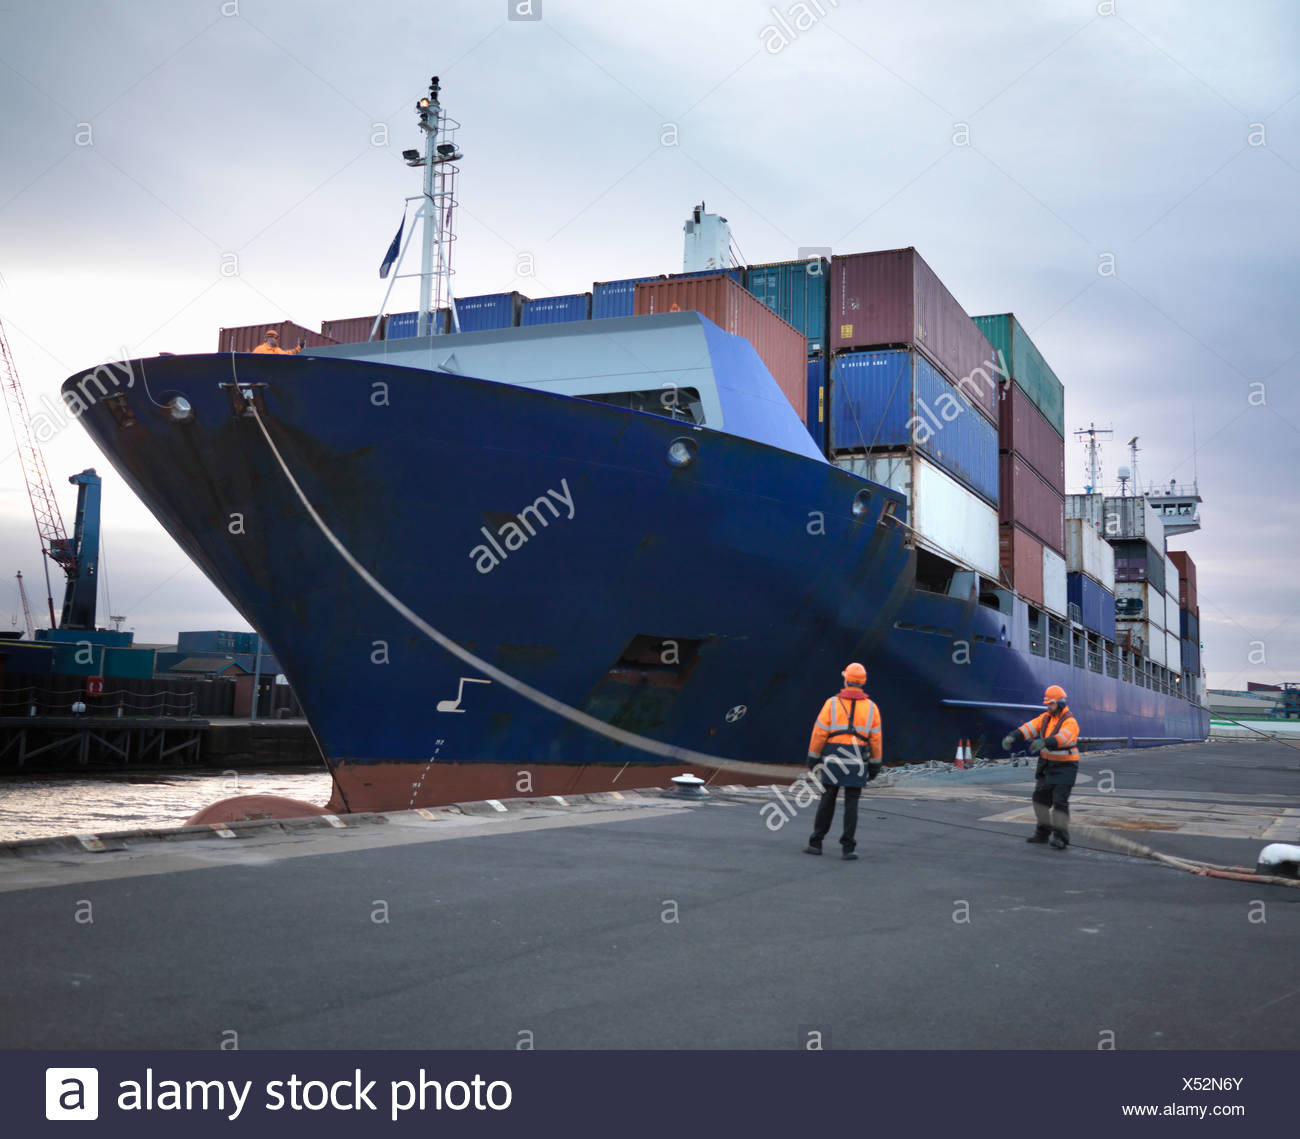 Port Workers With Loaded Ship At Port - Stock Image